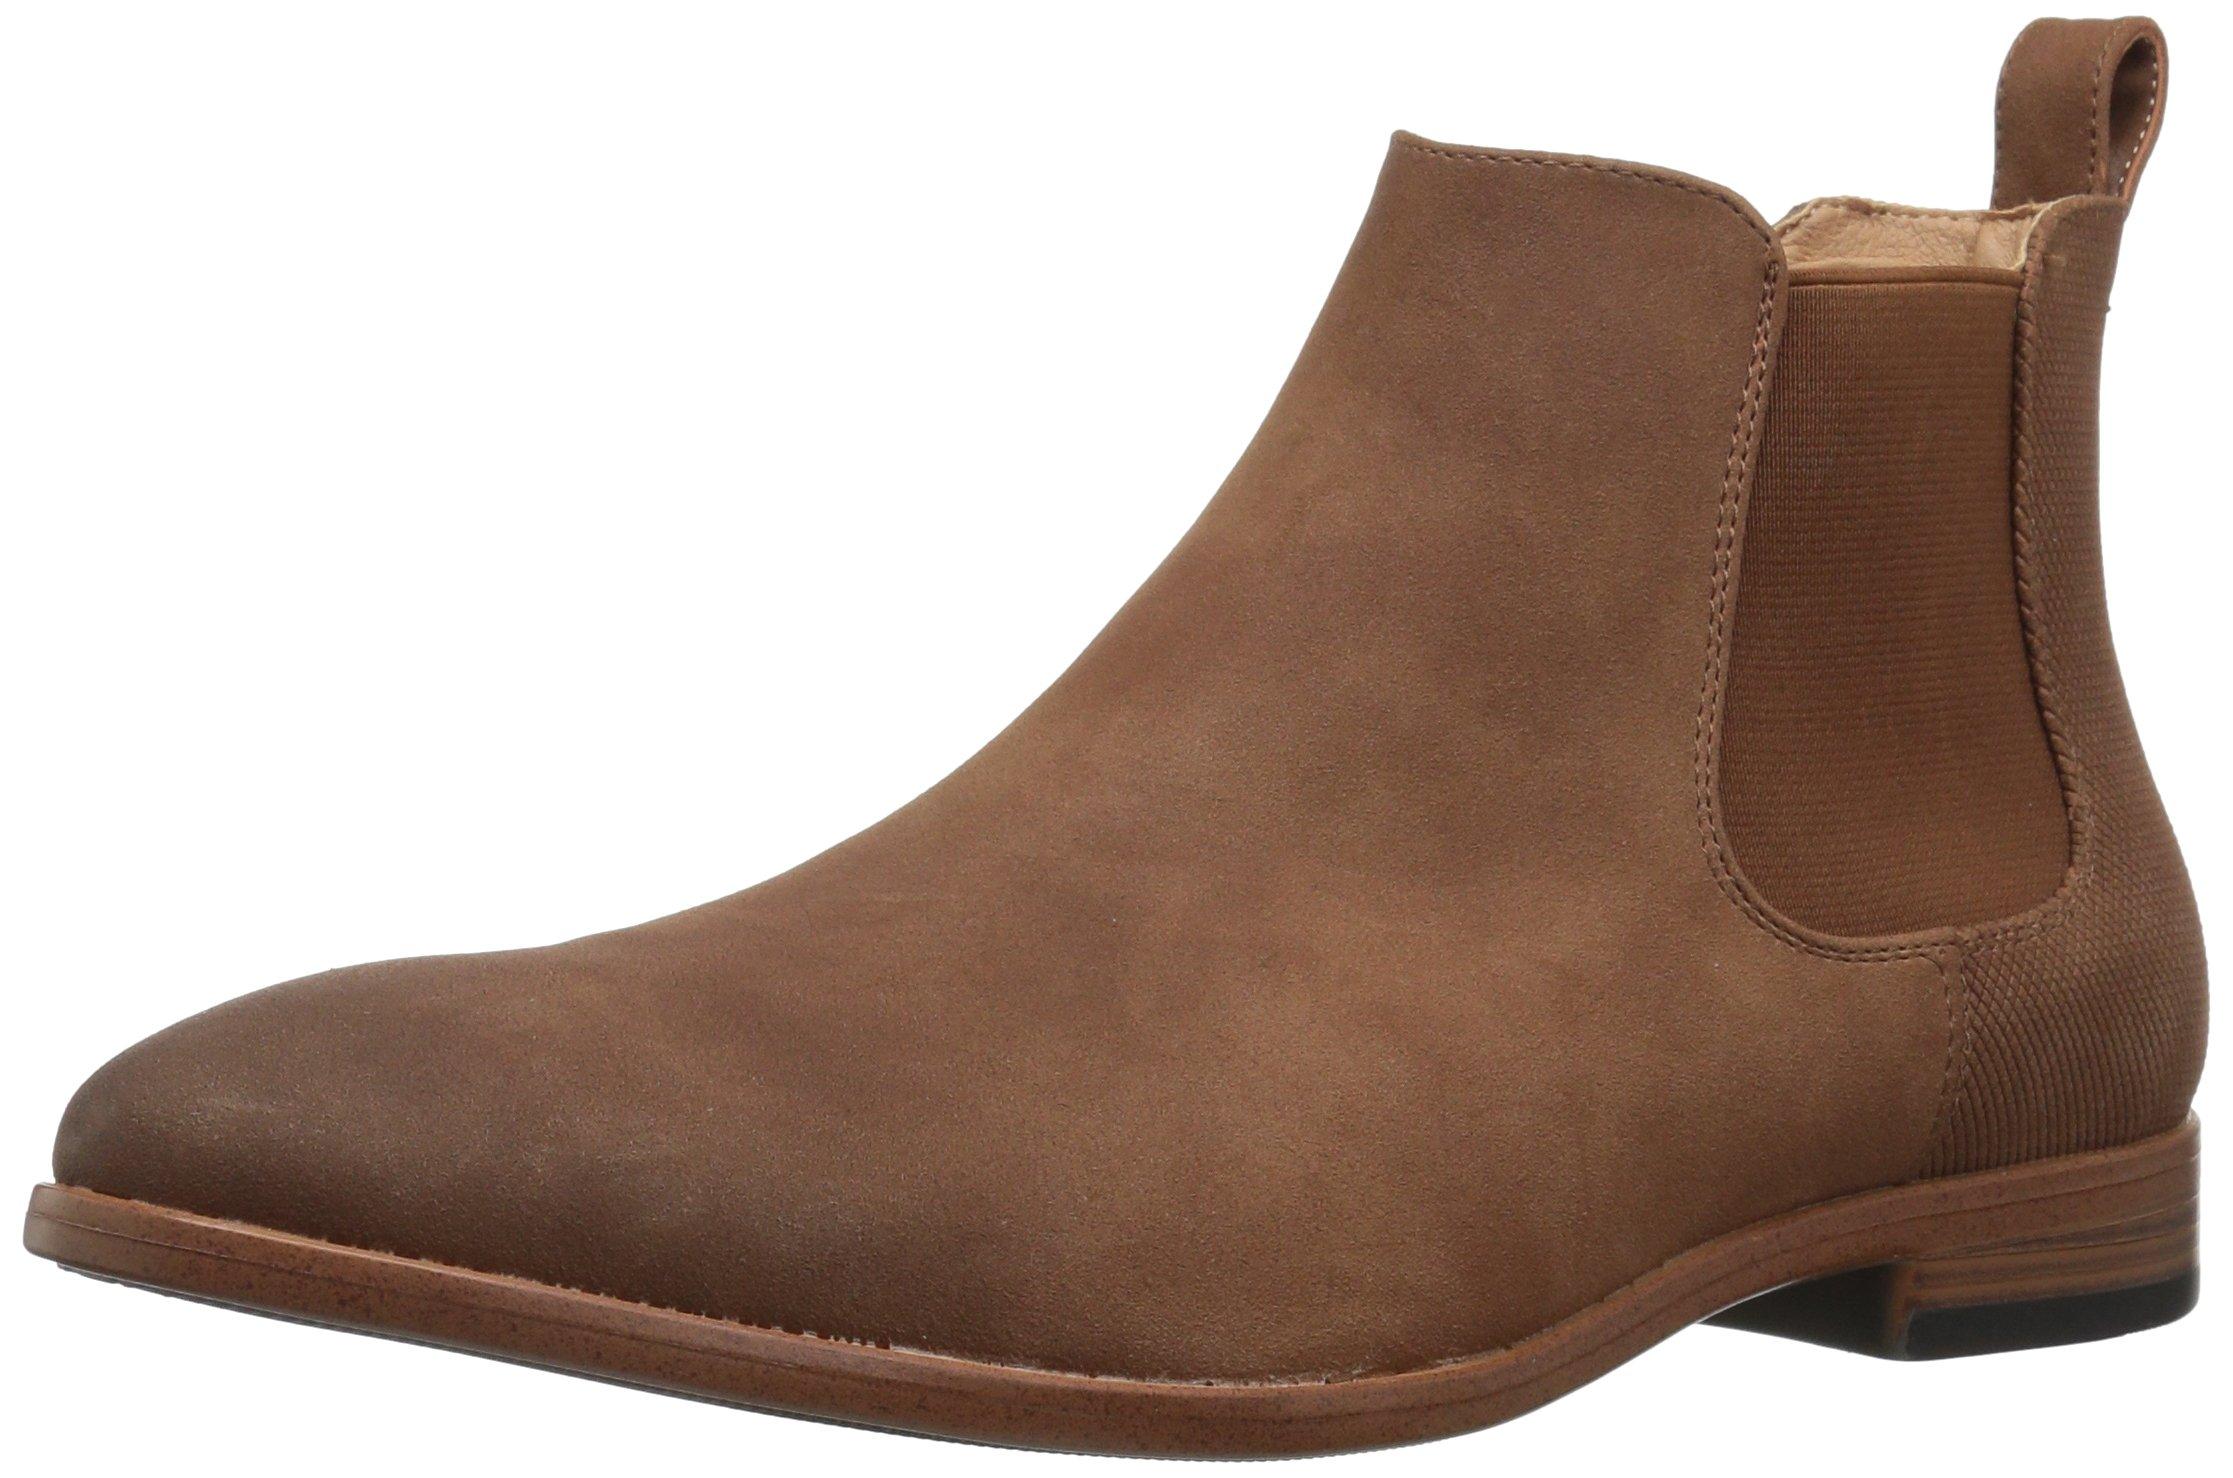 Madden Men's M-Grasp Chelsea Boot, Cognac Suede, 10.5 M US by Madden